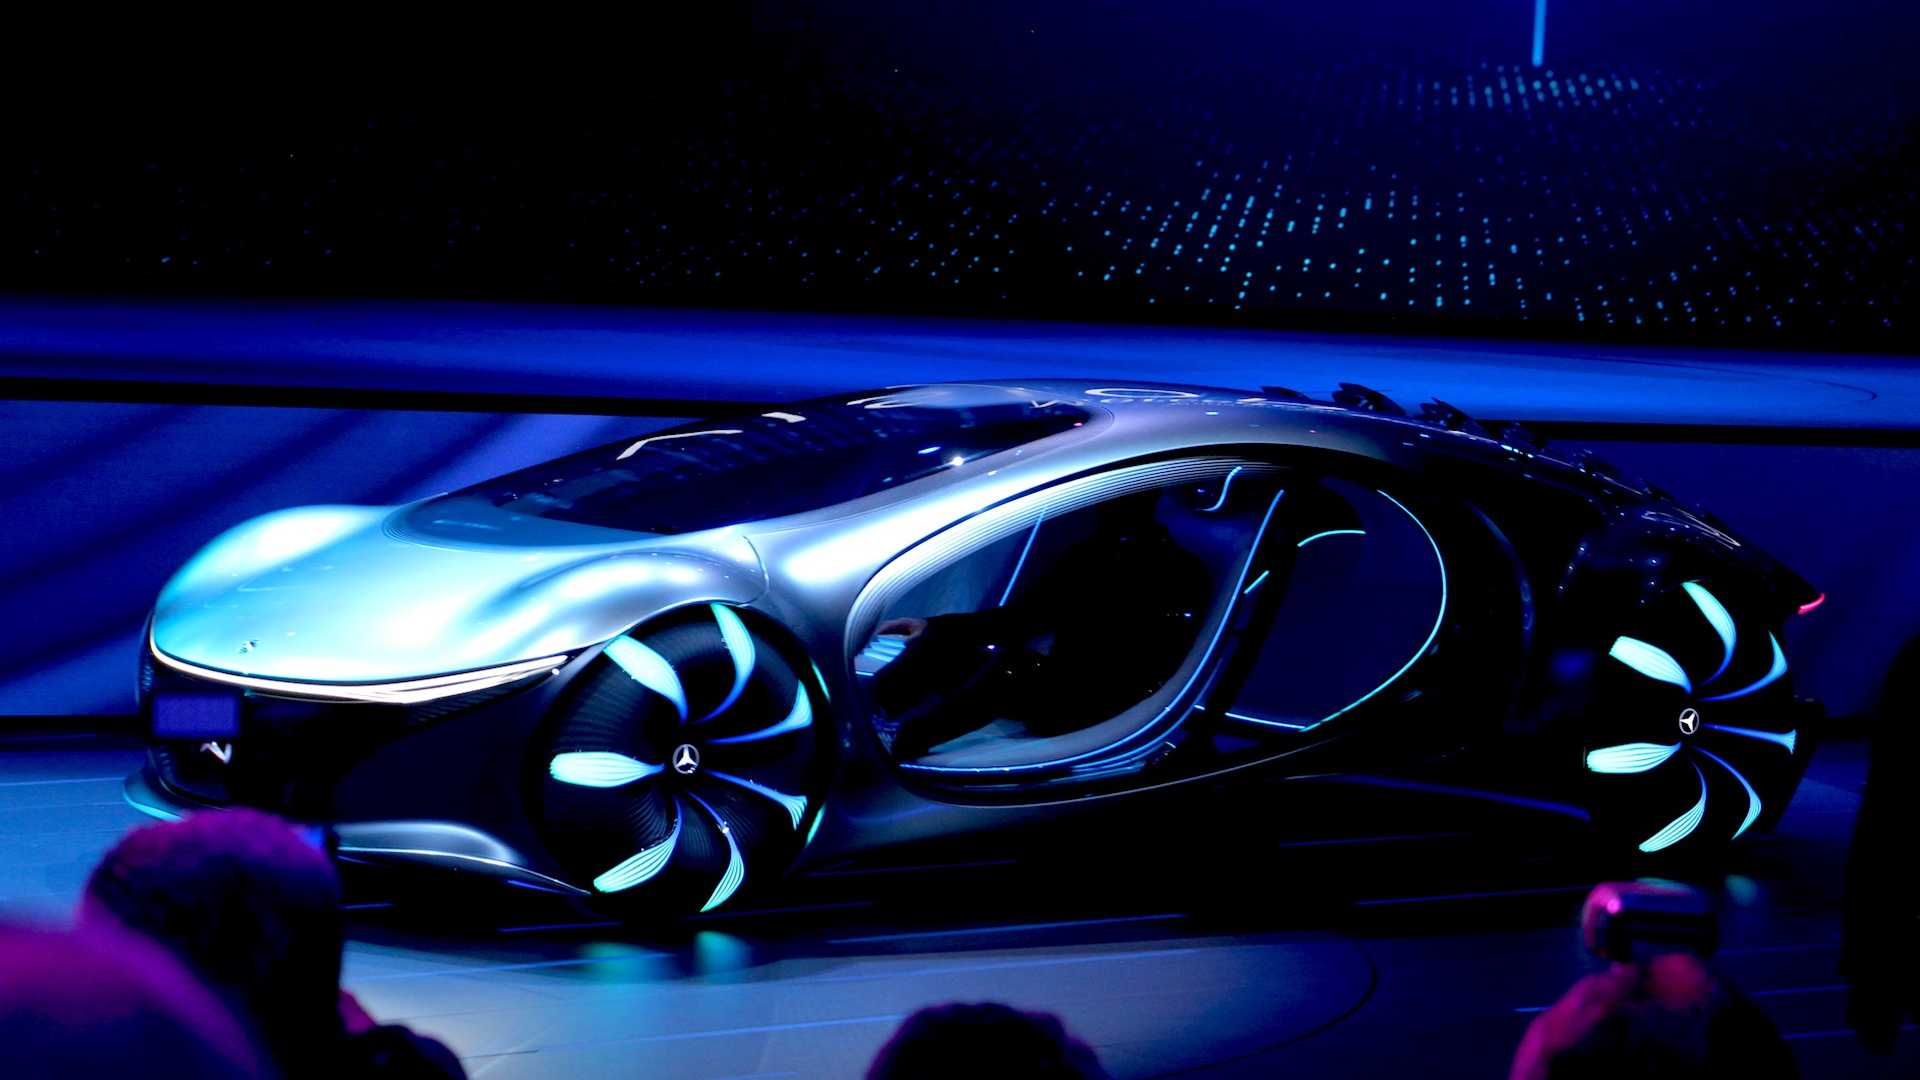 Mercedes Vision Avtr Concept Is A Futuristic Ev Inspired By Avatar